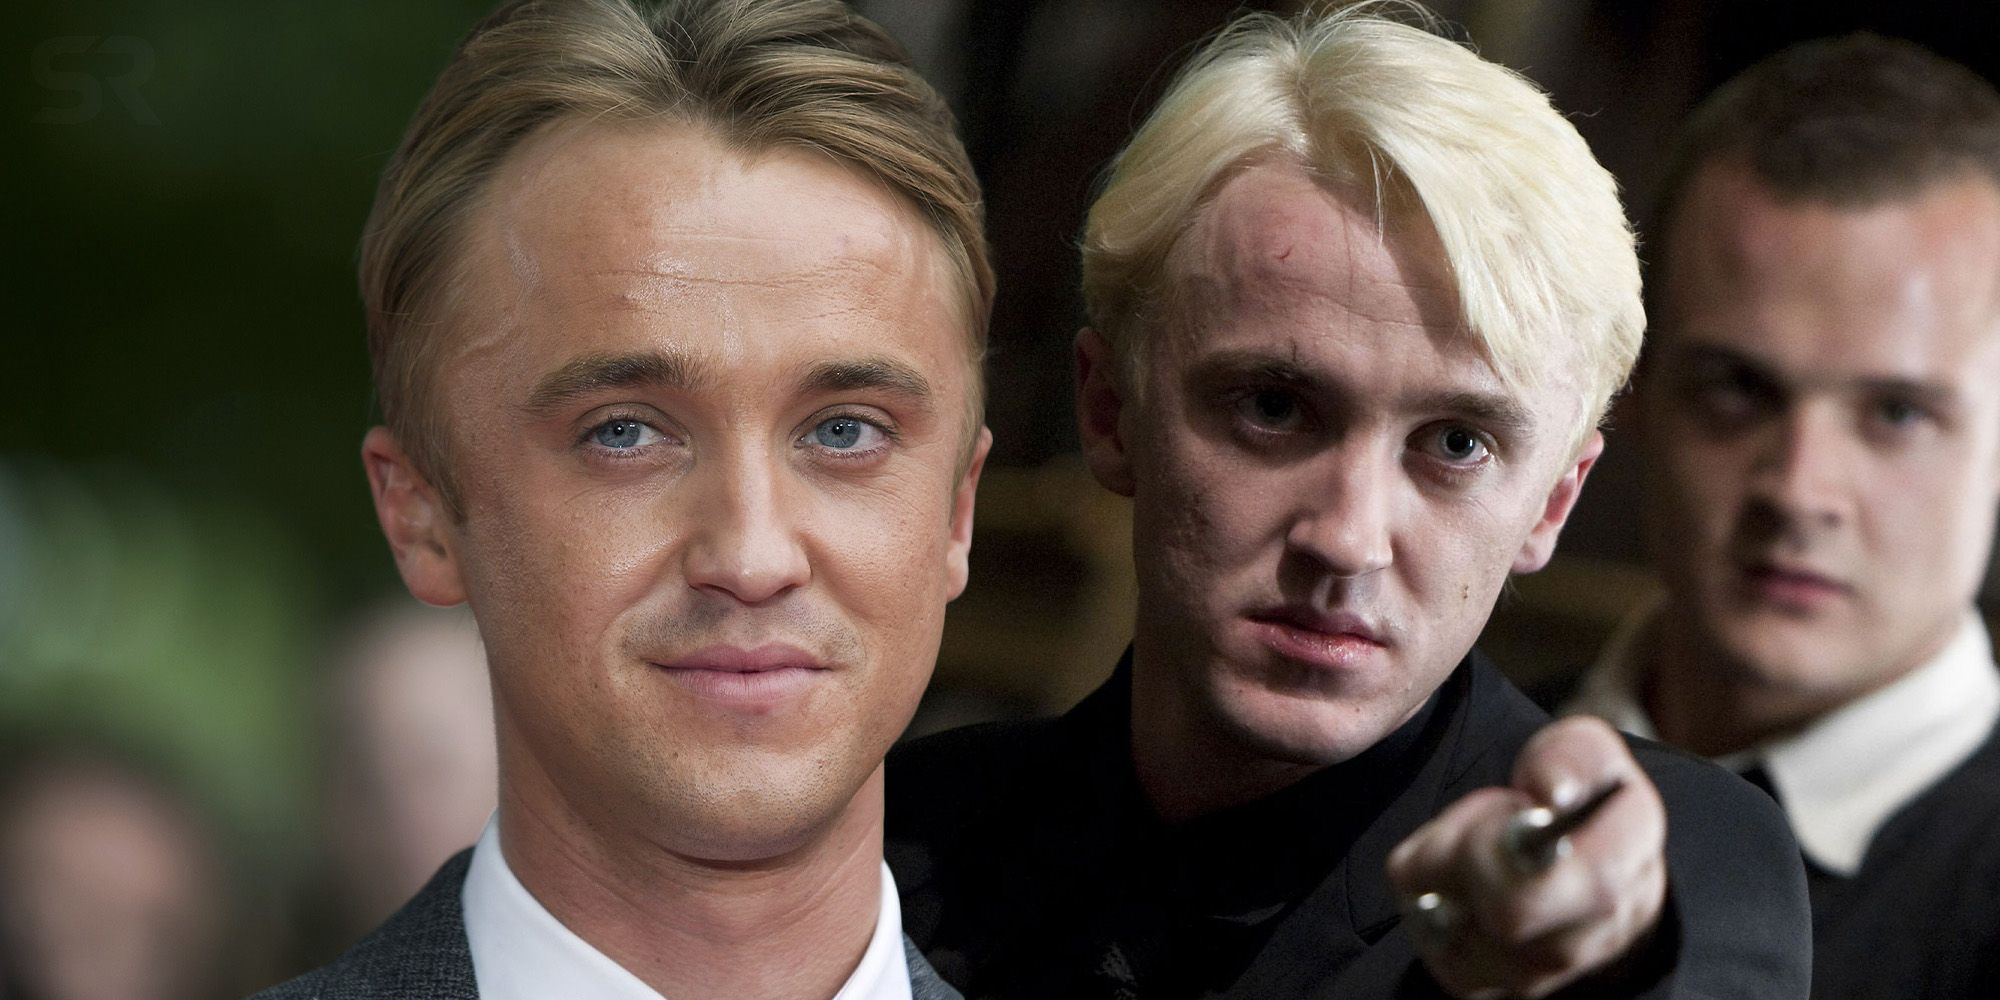 Tom Felton Relives Harry Potter Feud In Hilarious Photos